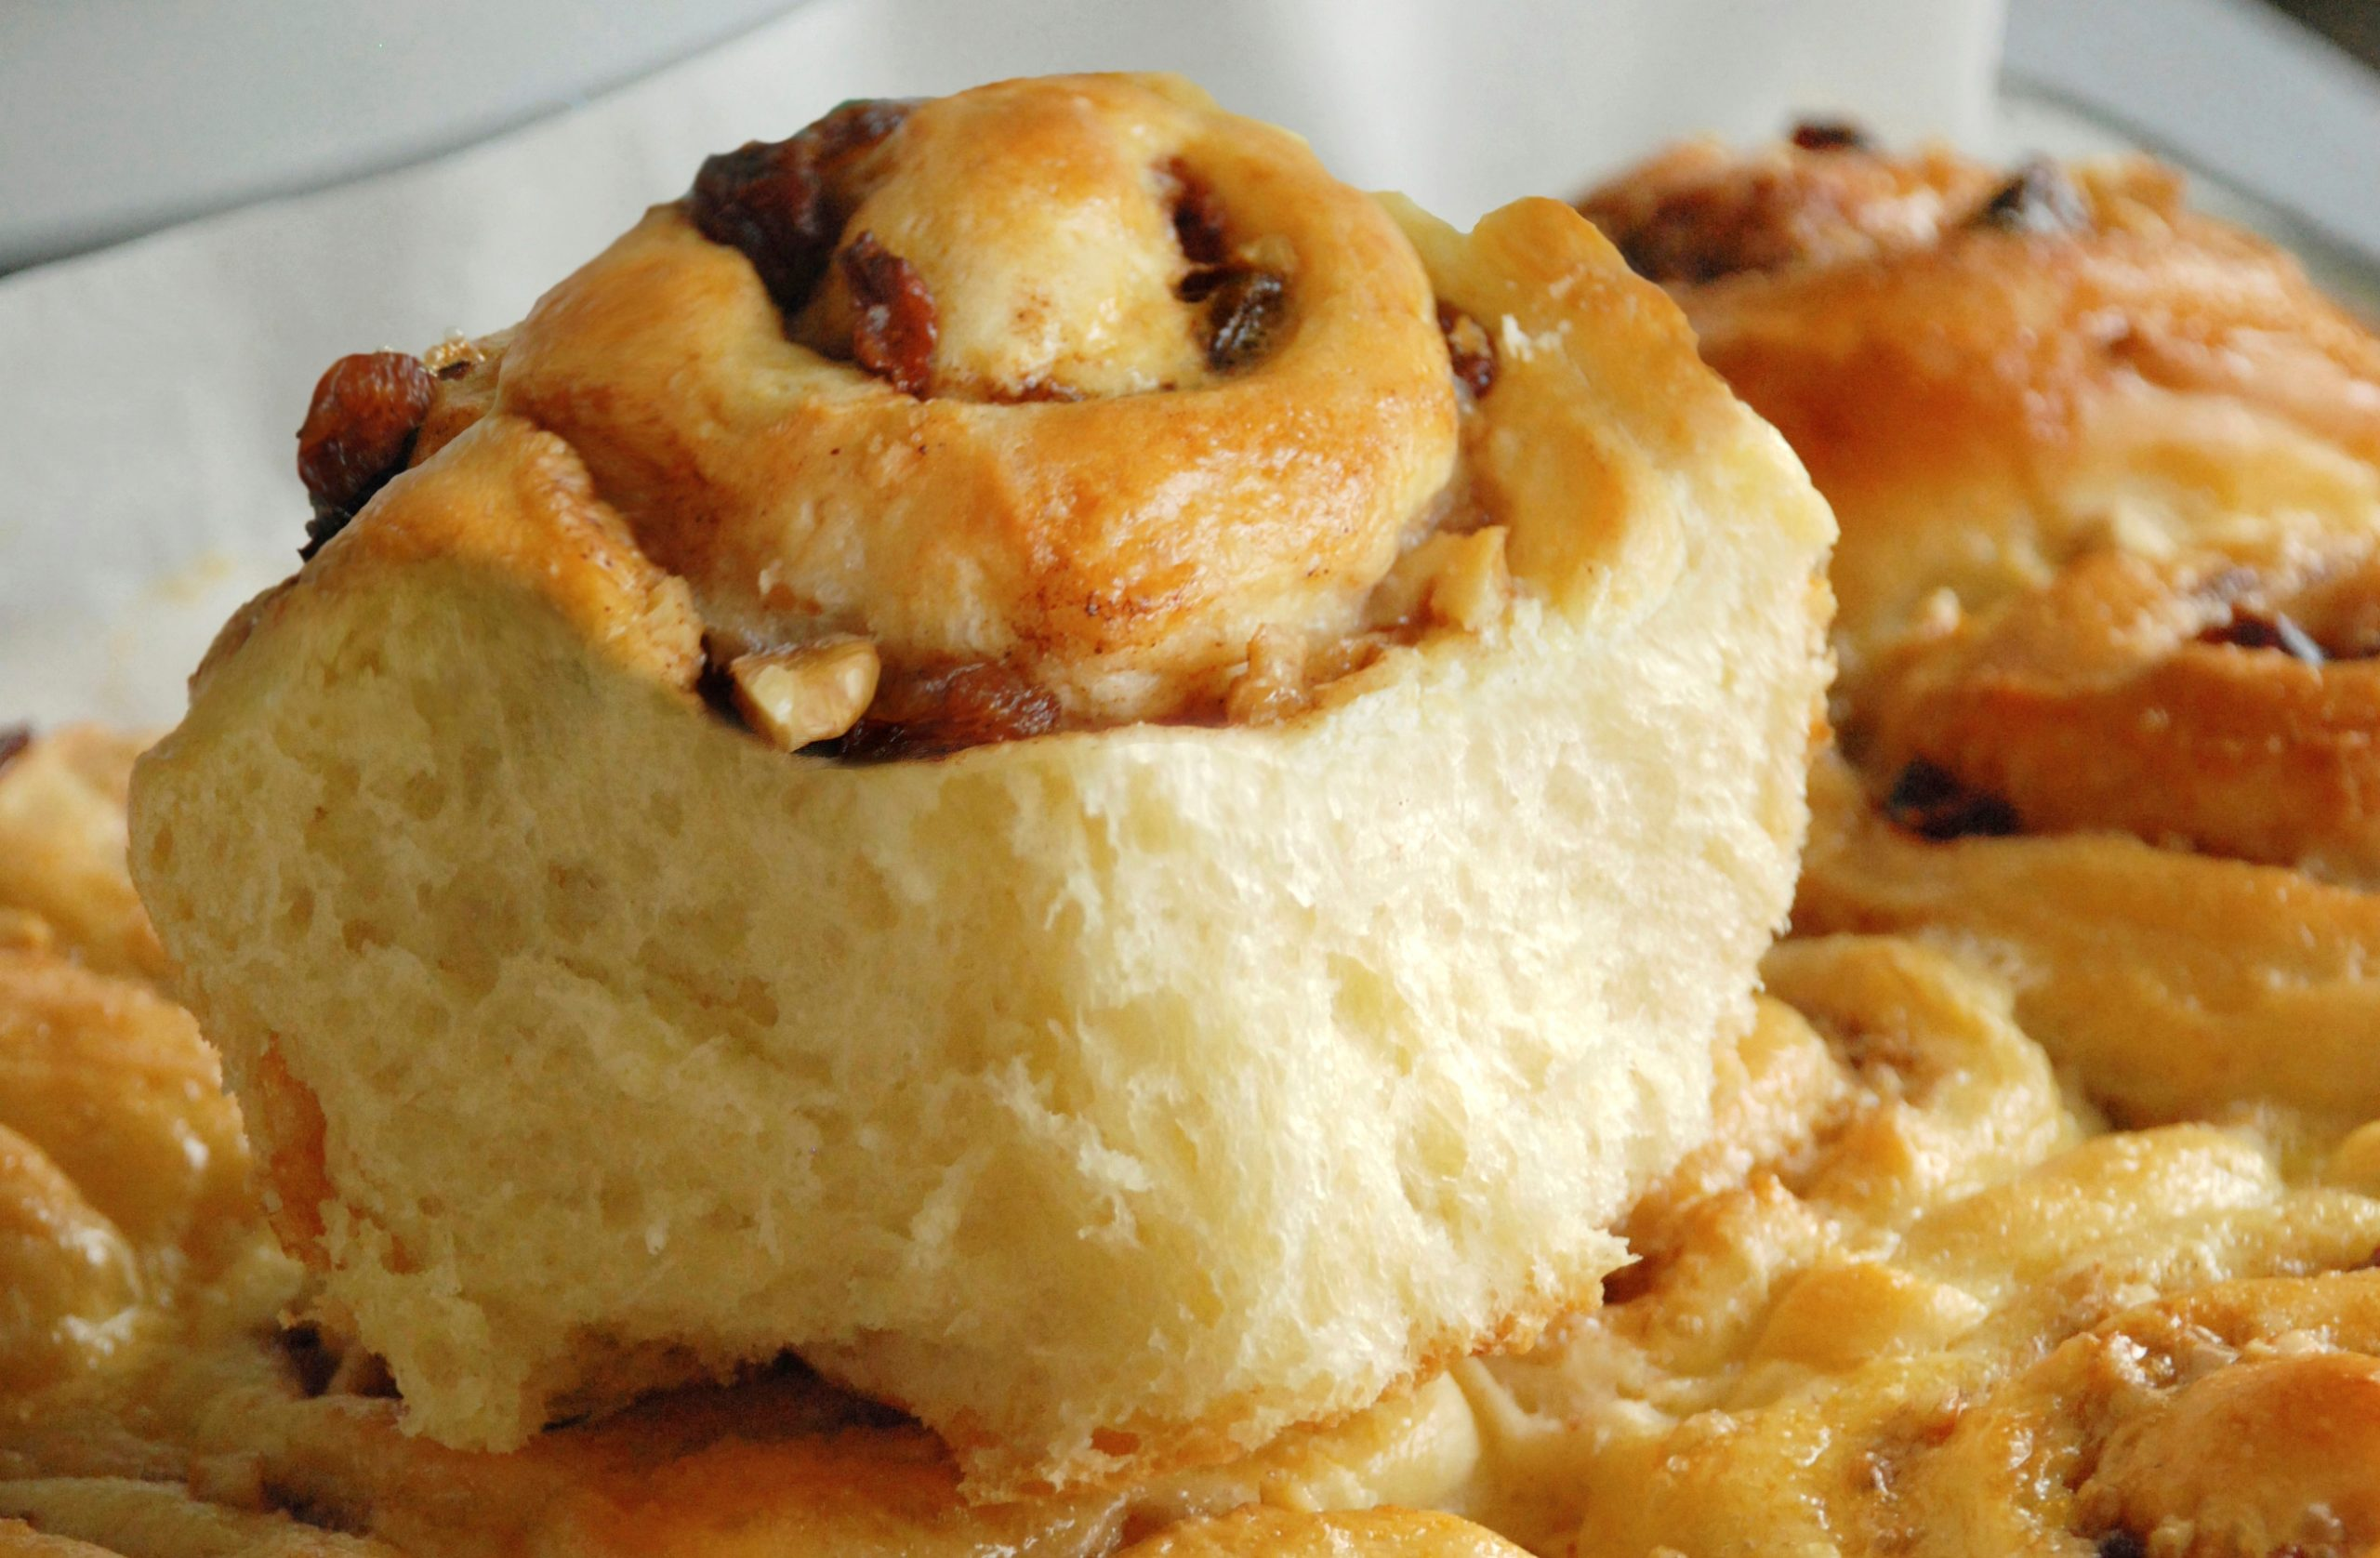 Yeast Buns on Kefir with Cinnamon and Dried Fruits